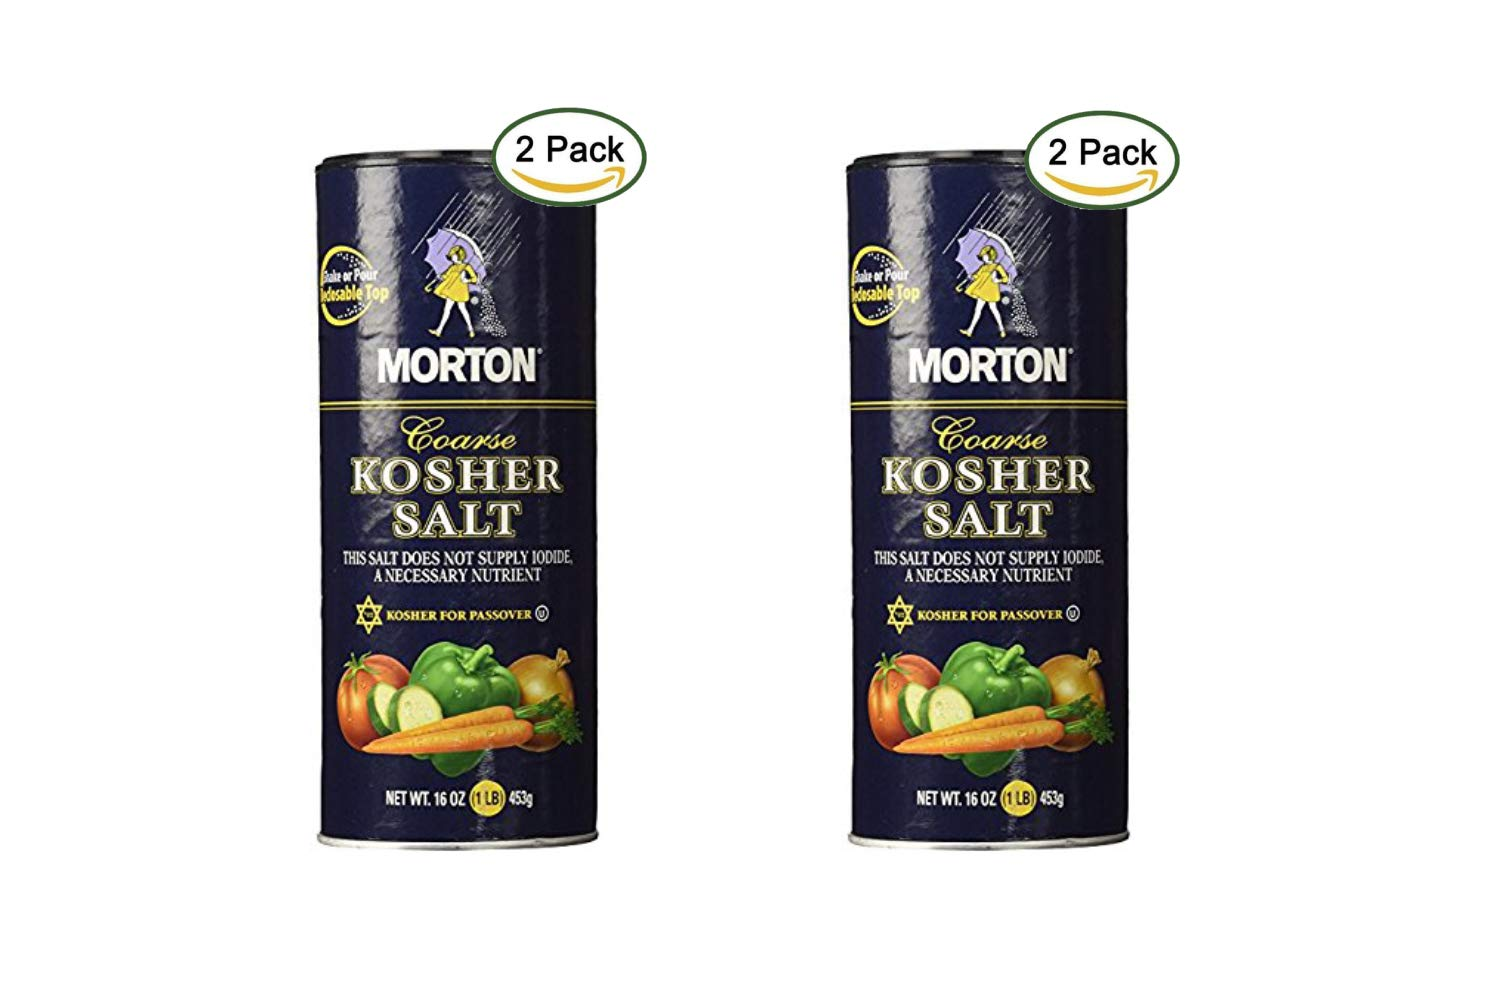 Morton Coarse Kosher Salt 16 oz. (Pack of 2) (2 Pack)